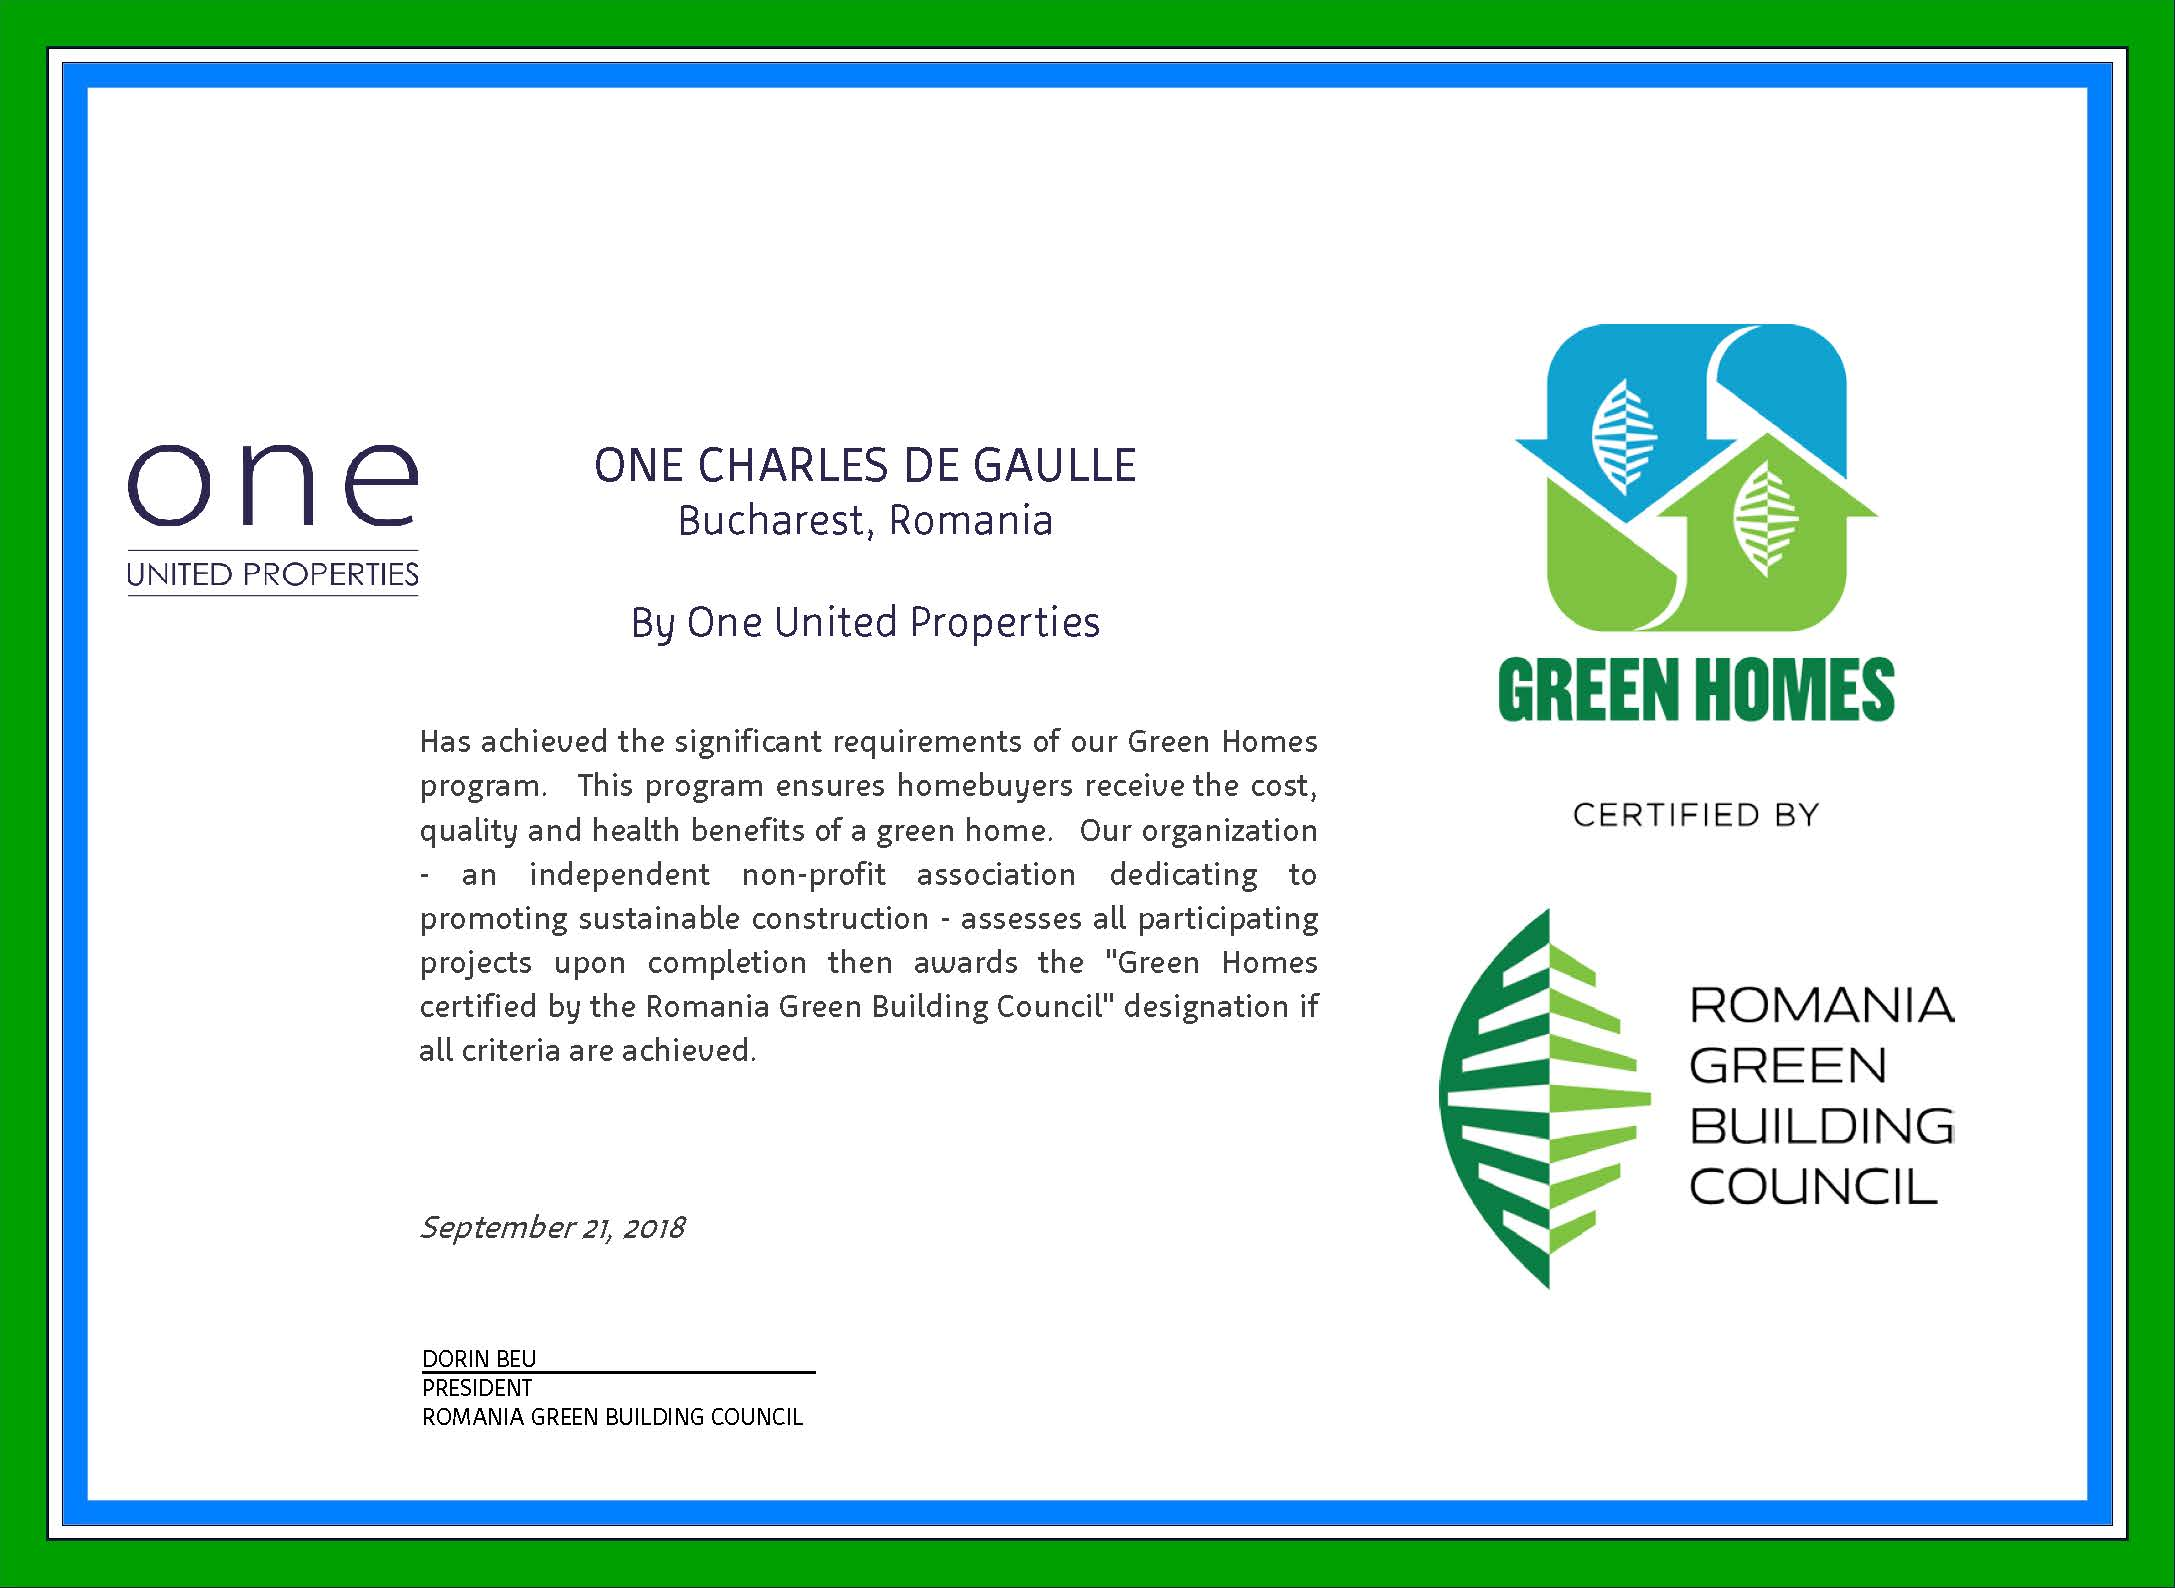 Green Home Certification - One Charles de Gaulle